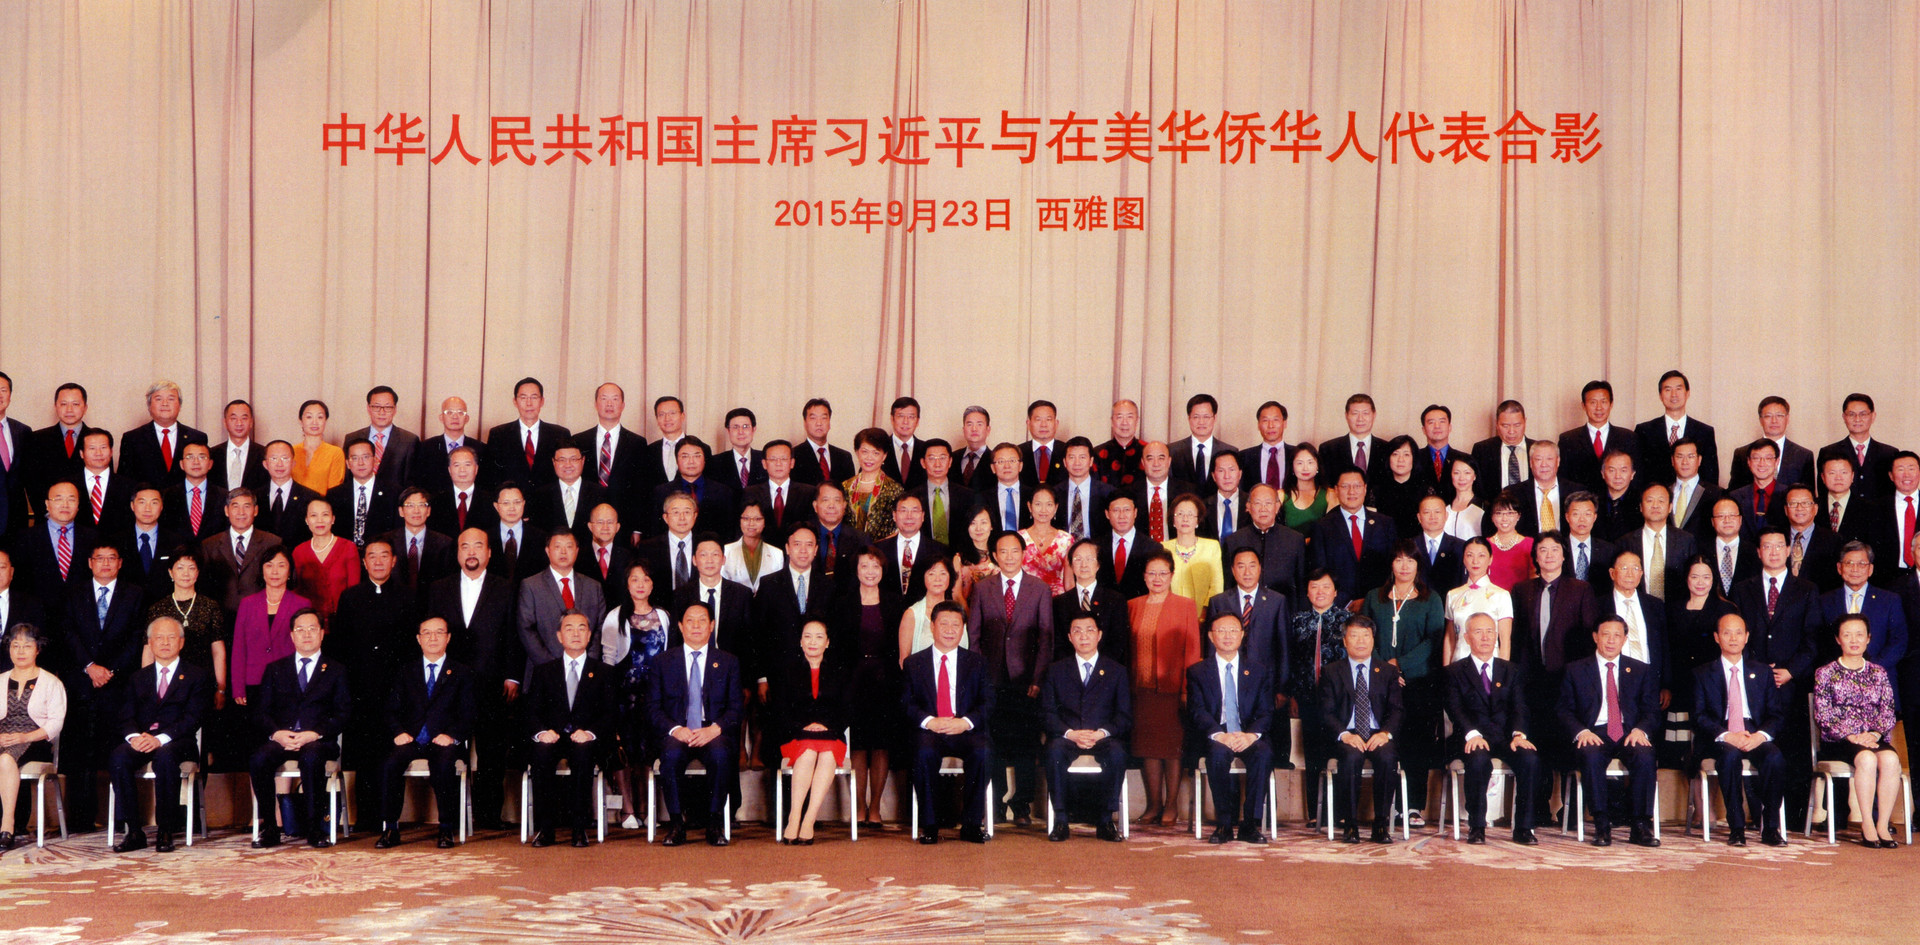 President XI Jinpin Met with Leaders of Overseas Chinese in Seattle